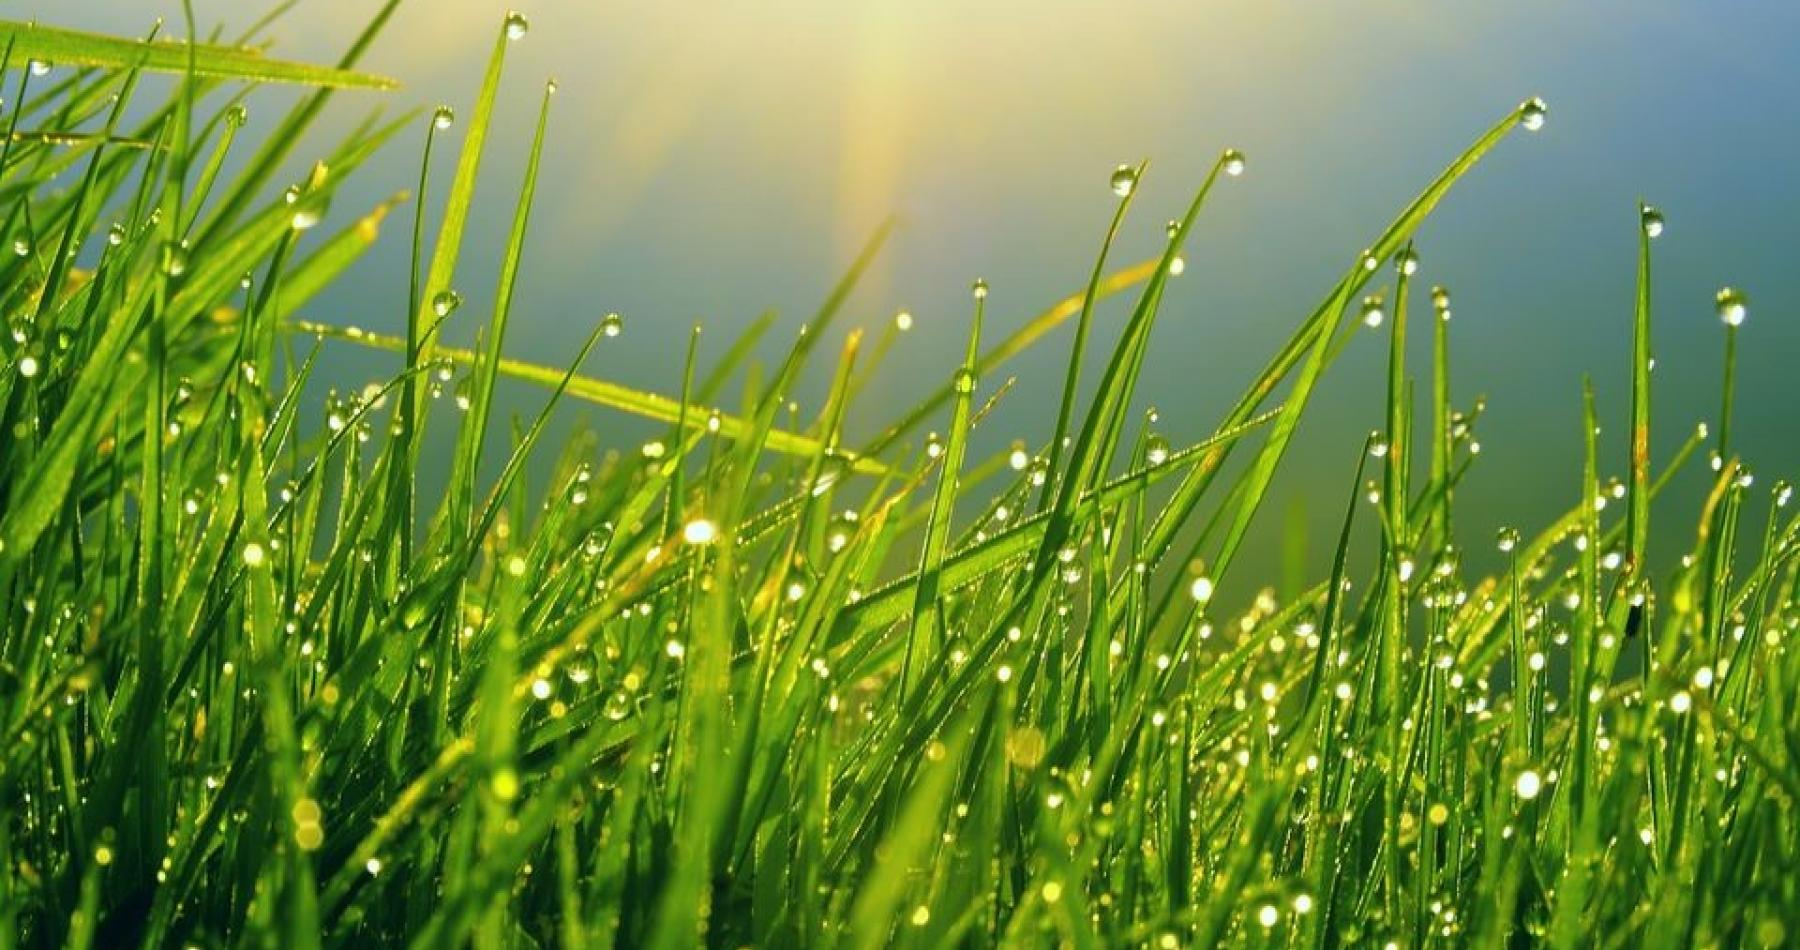 turf with dew drops PHOTO CREDIT: GESpest.com